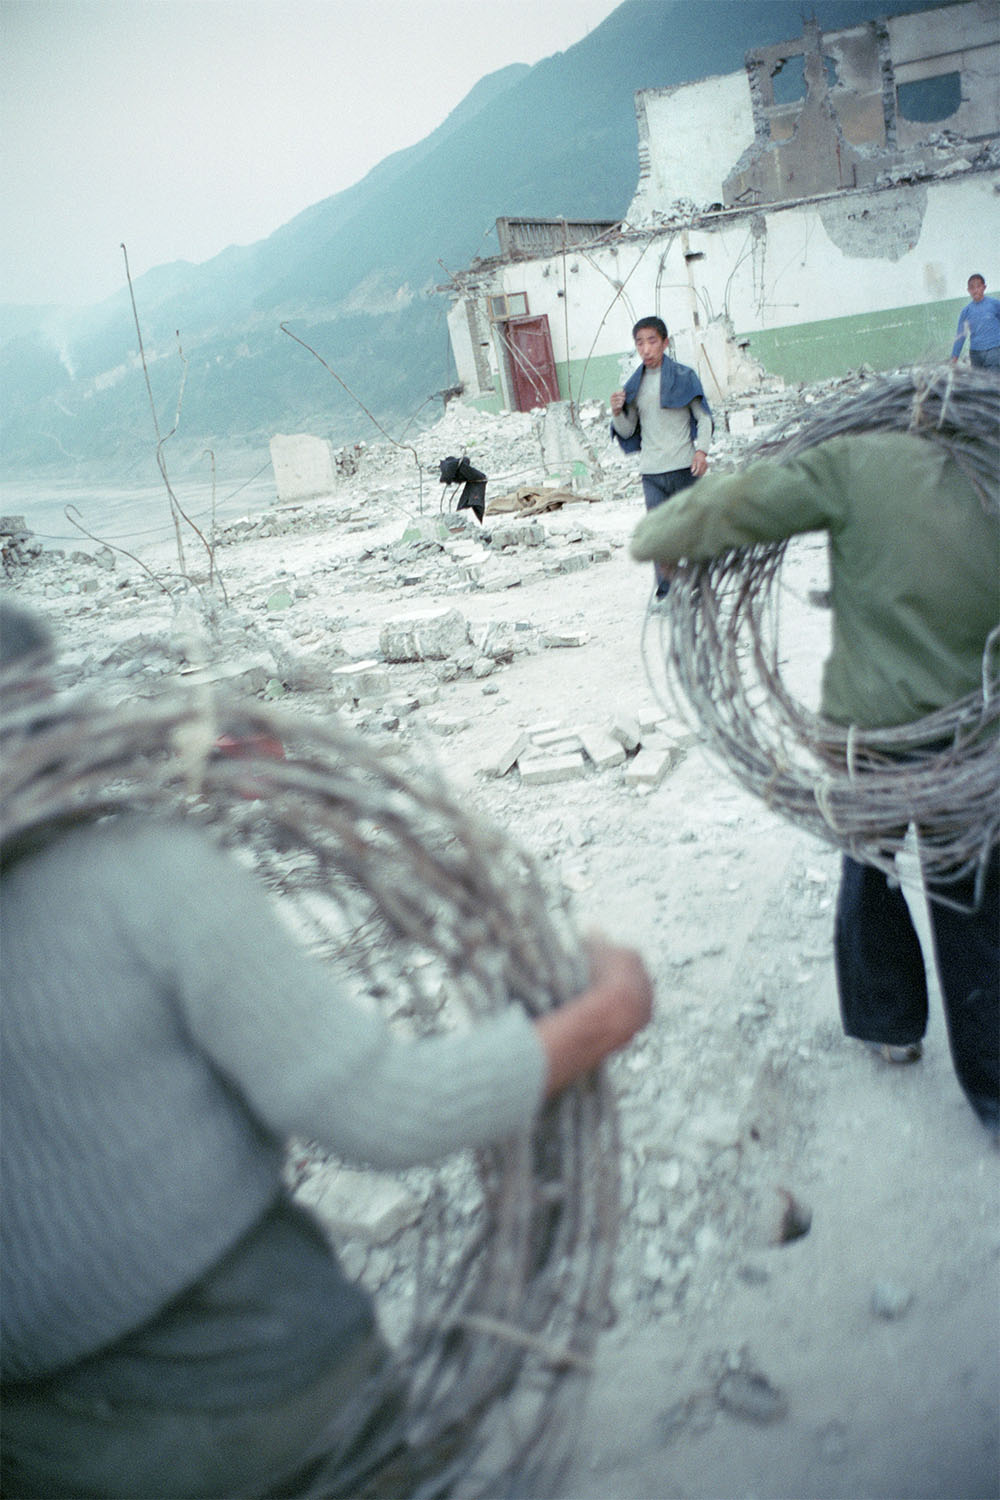 Migrant workers dismantling a recently vacated building. The workers supplement their poor income by selling scrap metal and bricks salvaged from demolition sites. Badong, China. 2002.